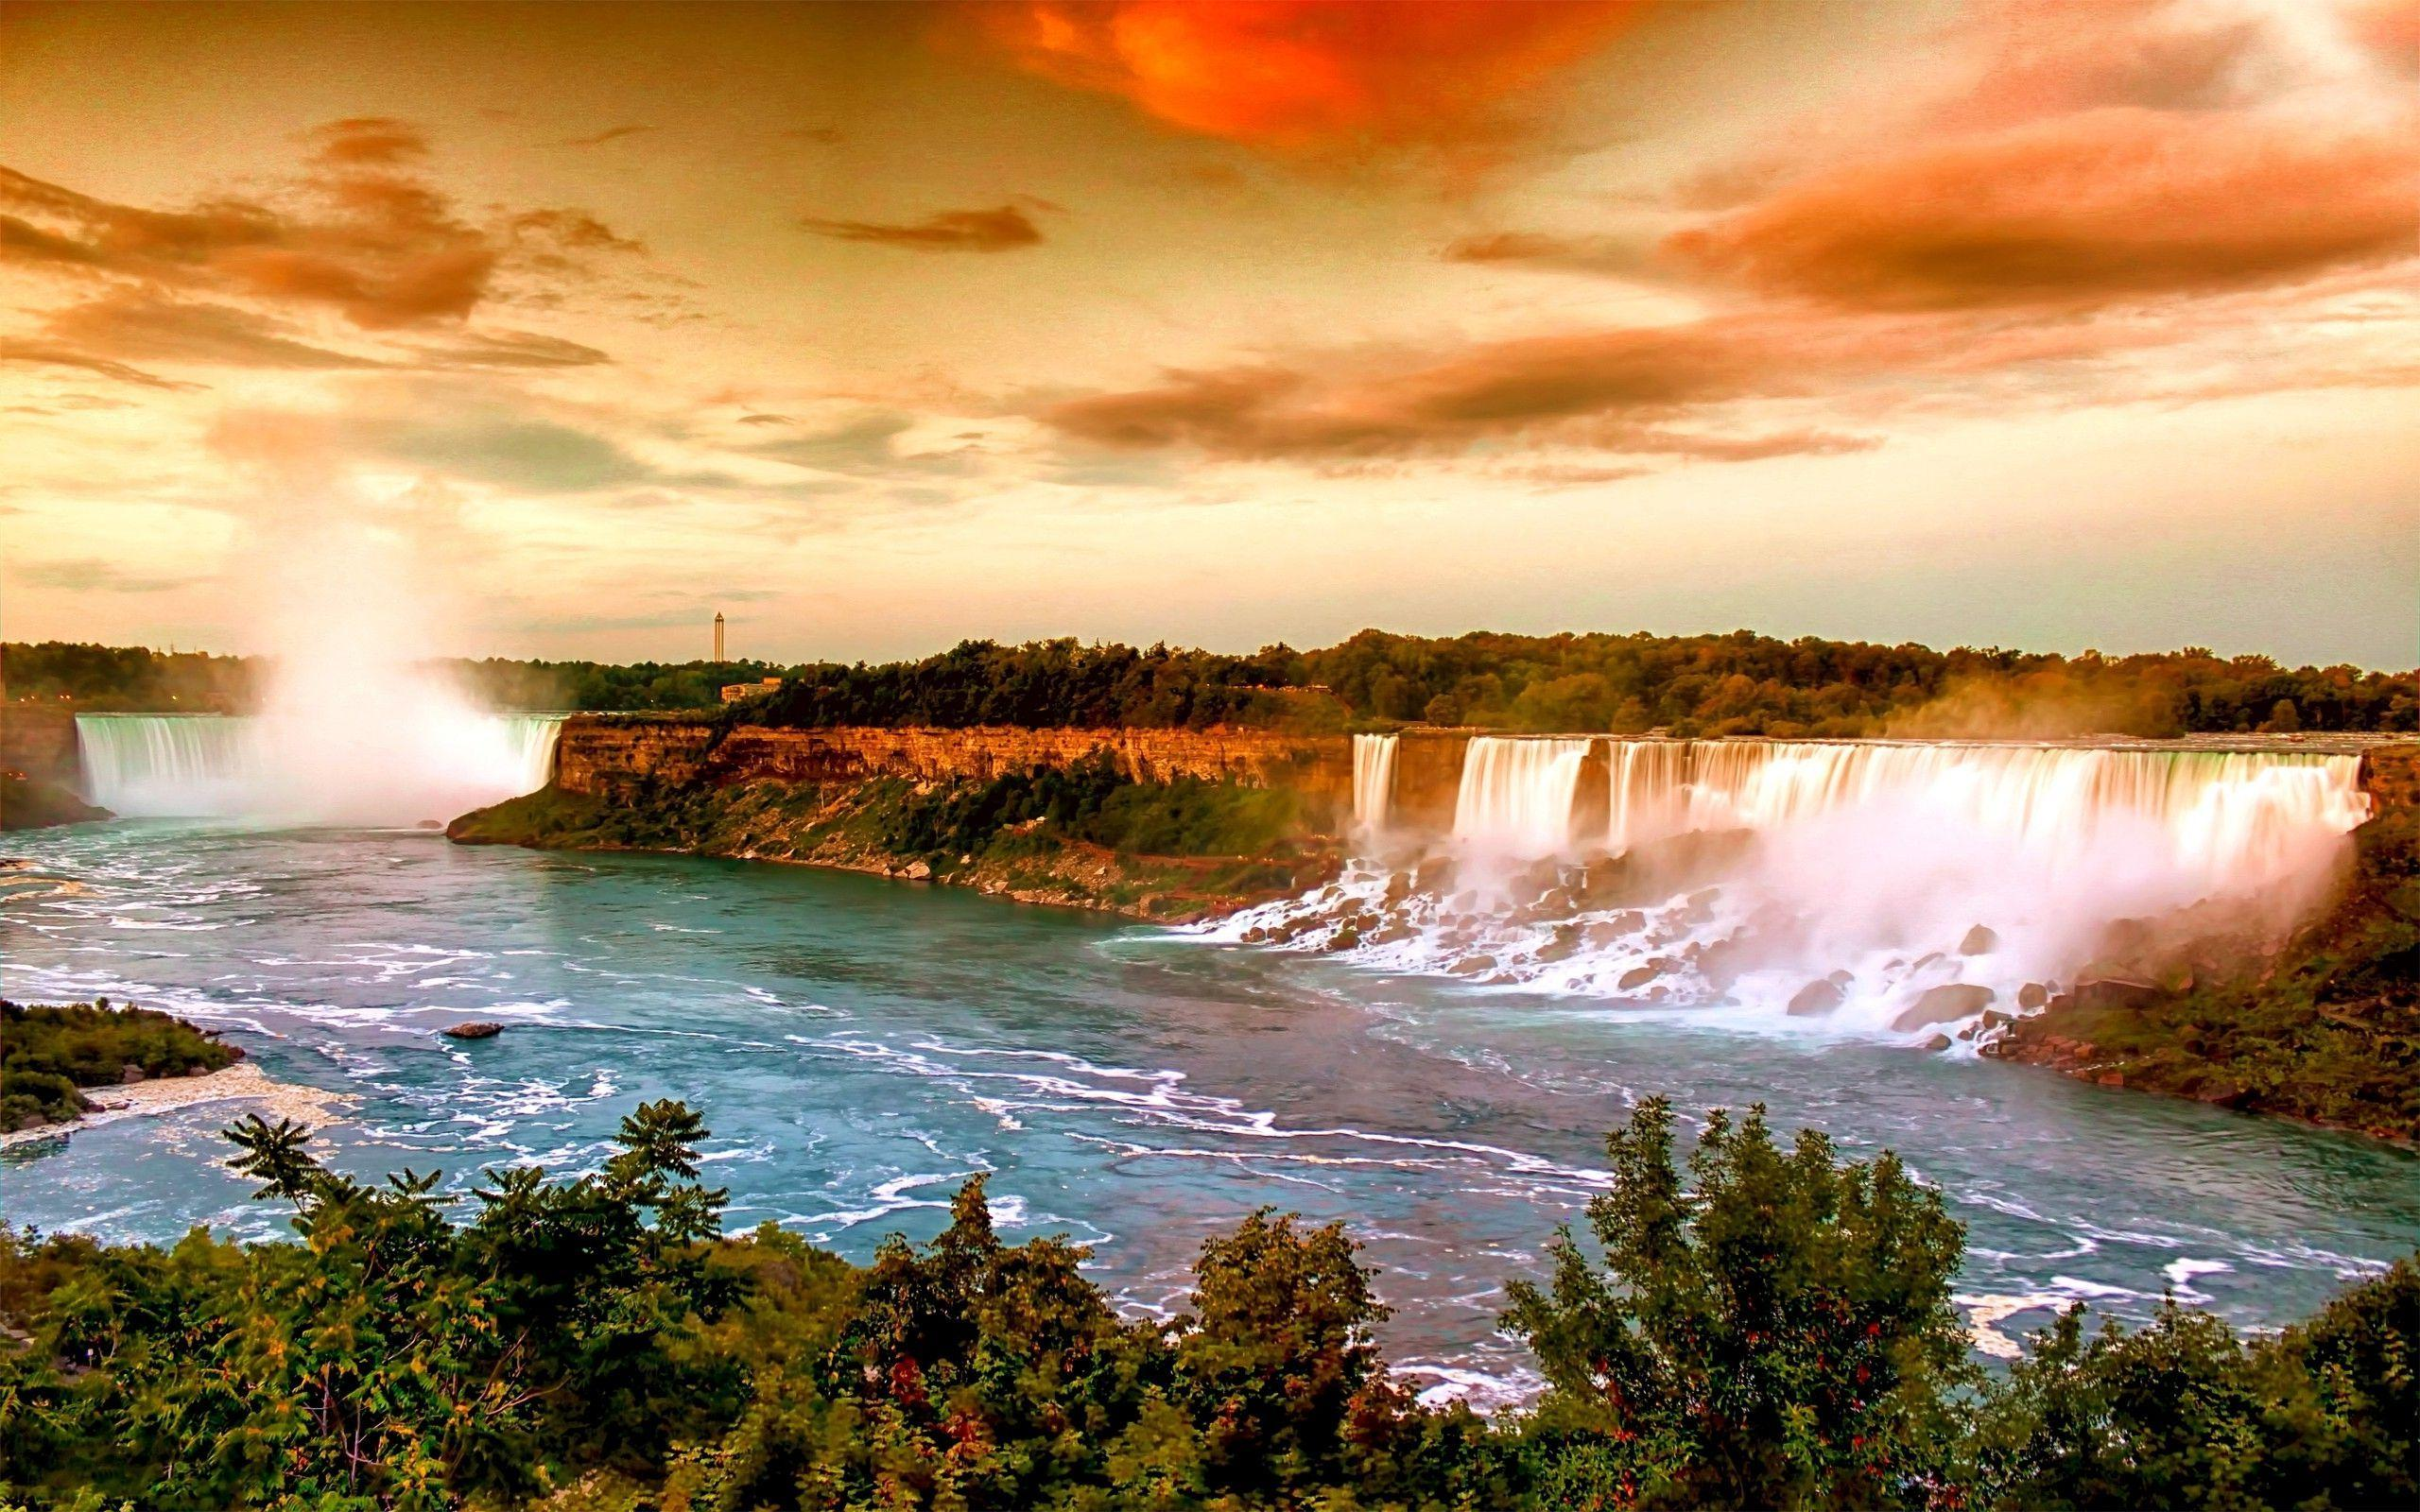 an essay on the problem with the love canal in niagara falls Niagara falls essay examples 9 total results canada, a new friend 2,759 words 6 pages an essay on the problem with the love canal in niagara falls 1,533.